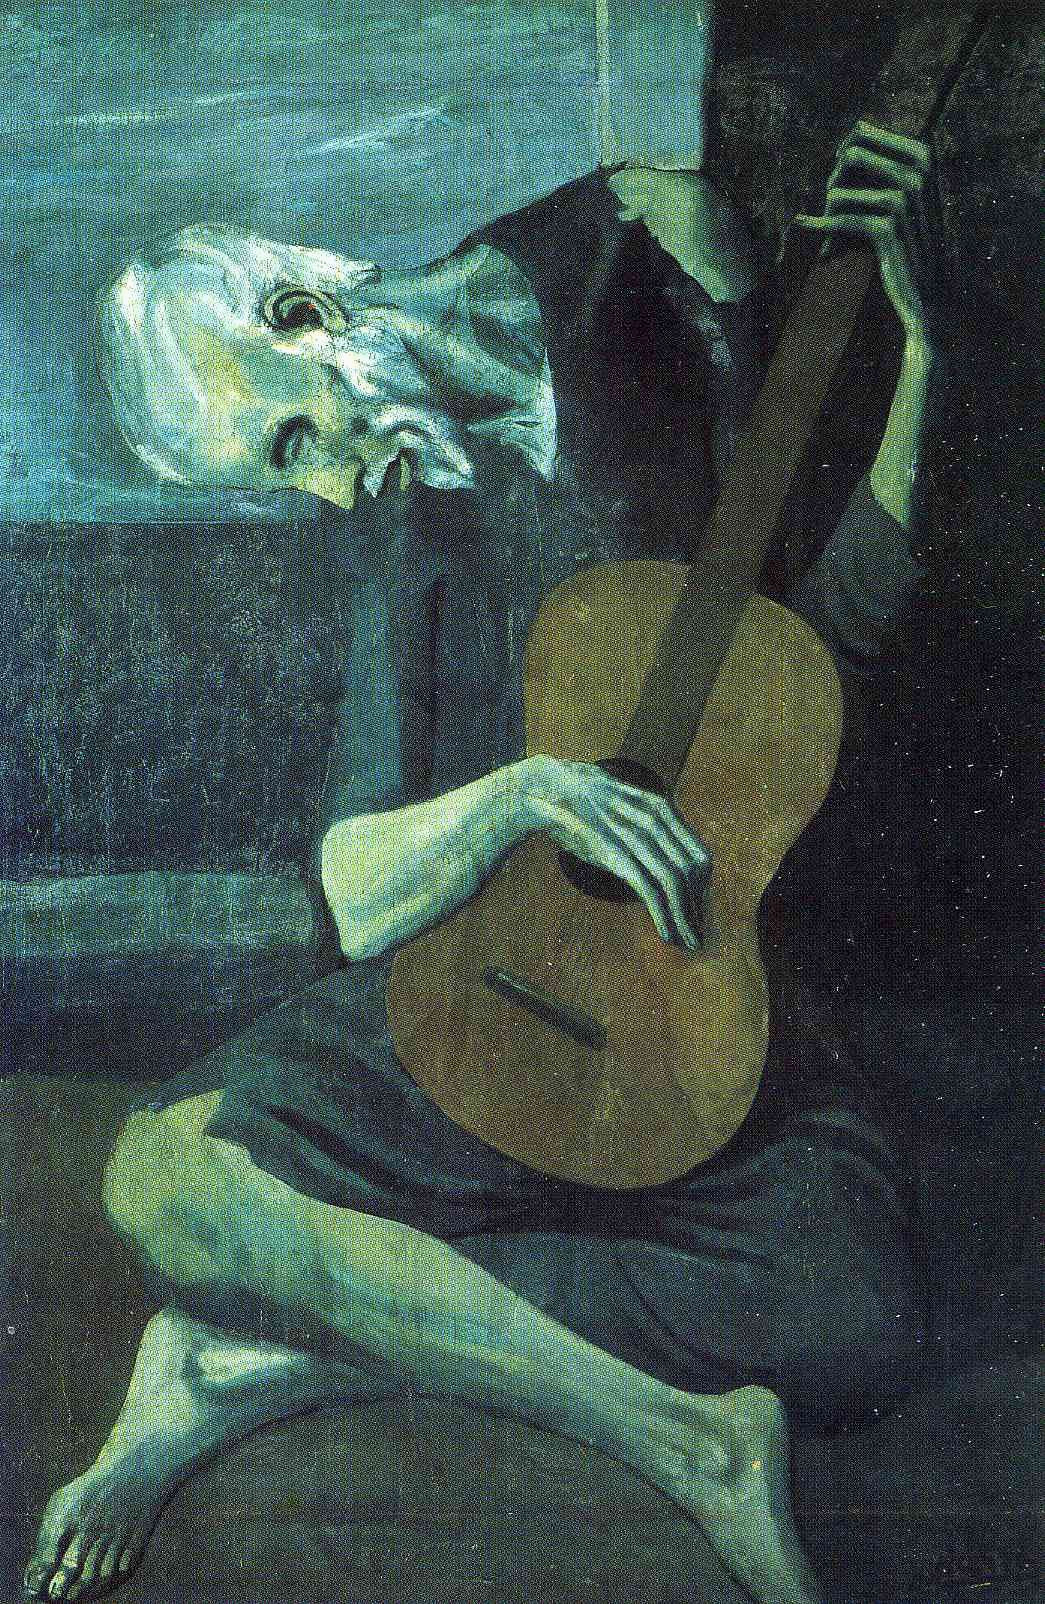 Pablo Picasso Peinture Unique the Old Blind Guitarist by Pablo Picasso Size 121 3x82 5 Cm Medium Stock